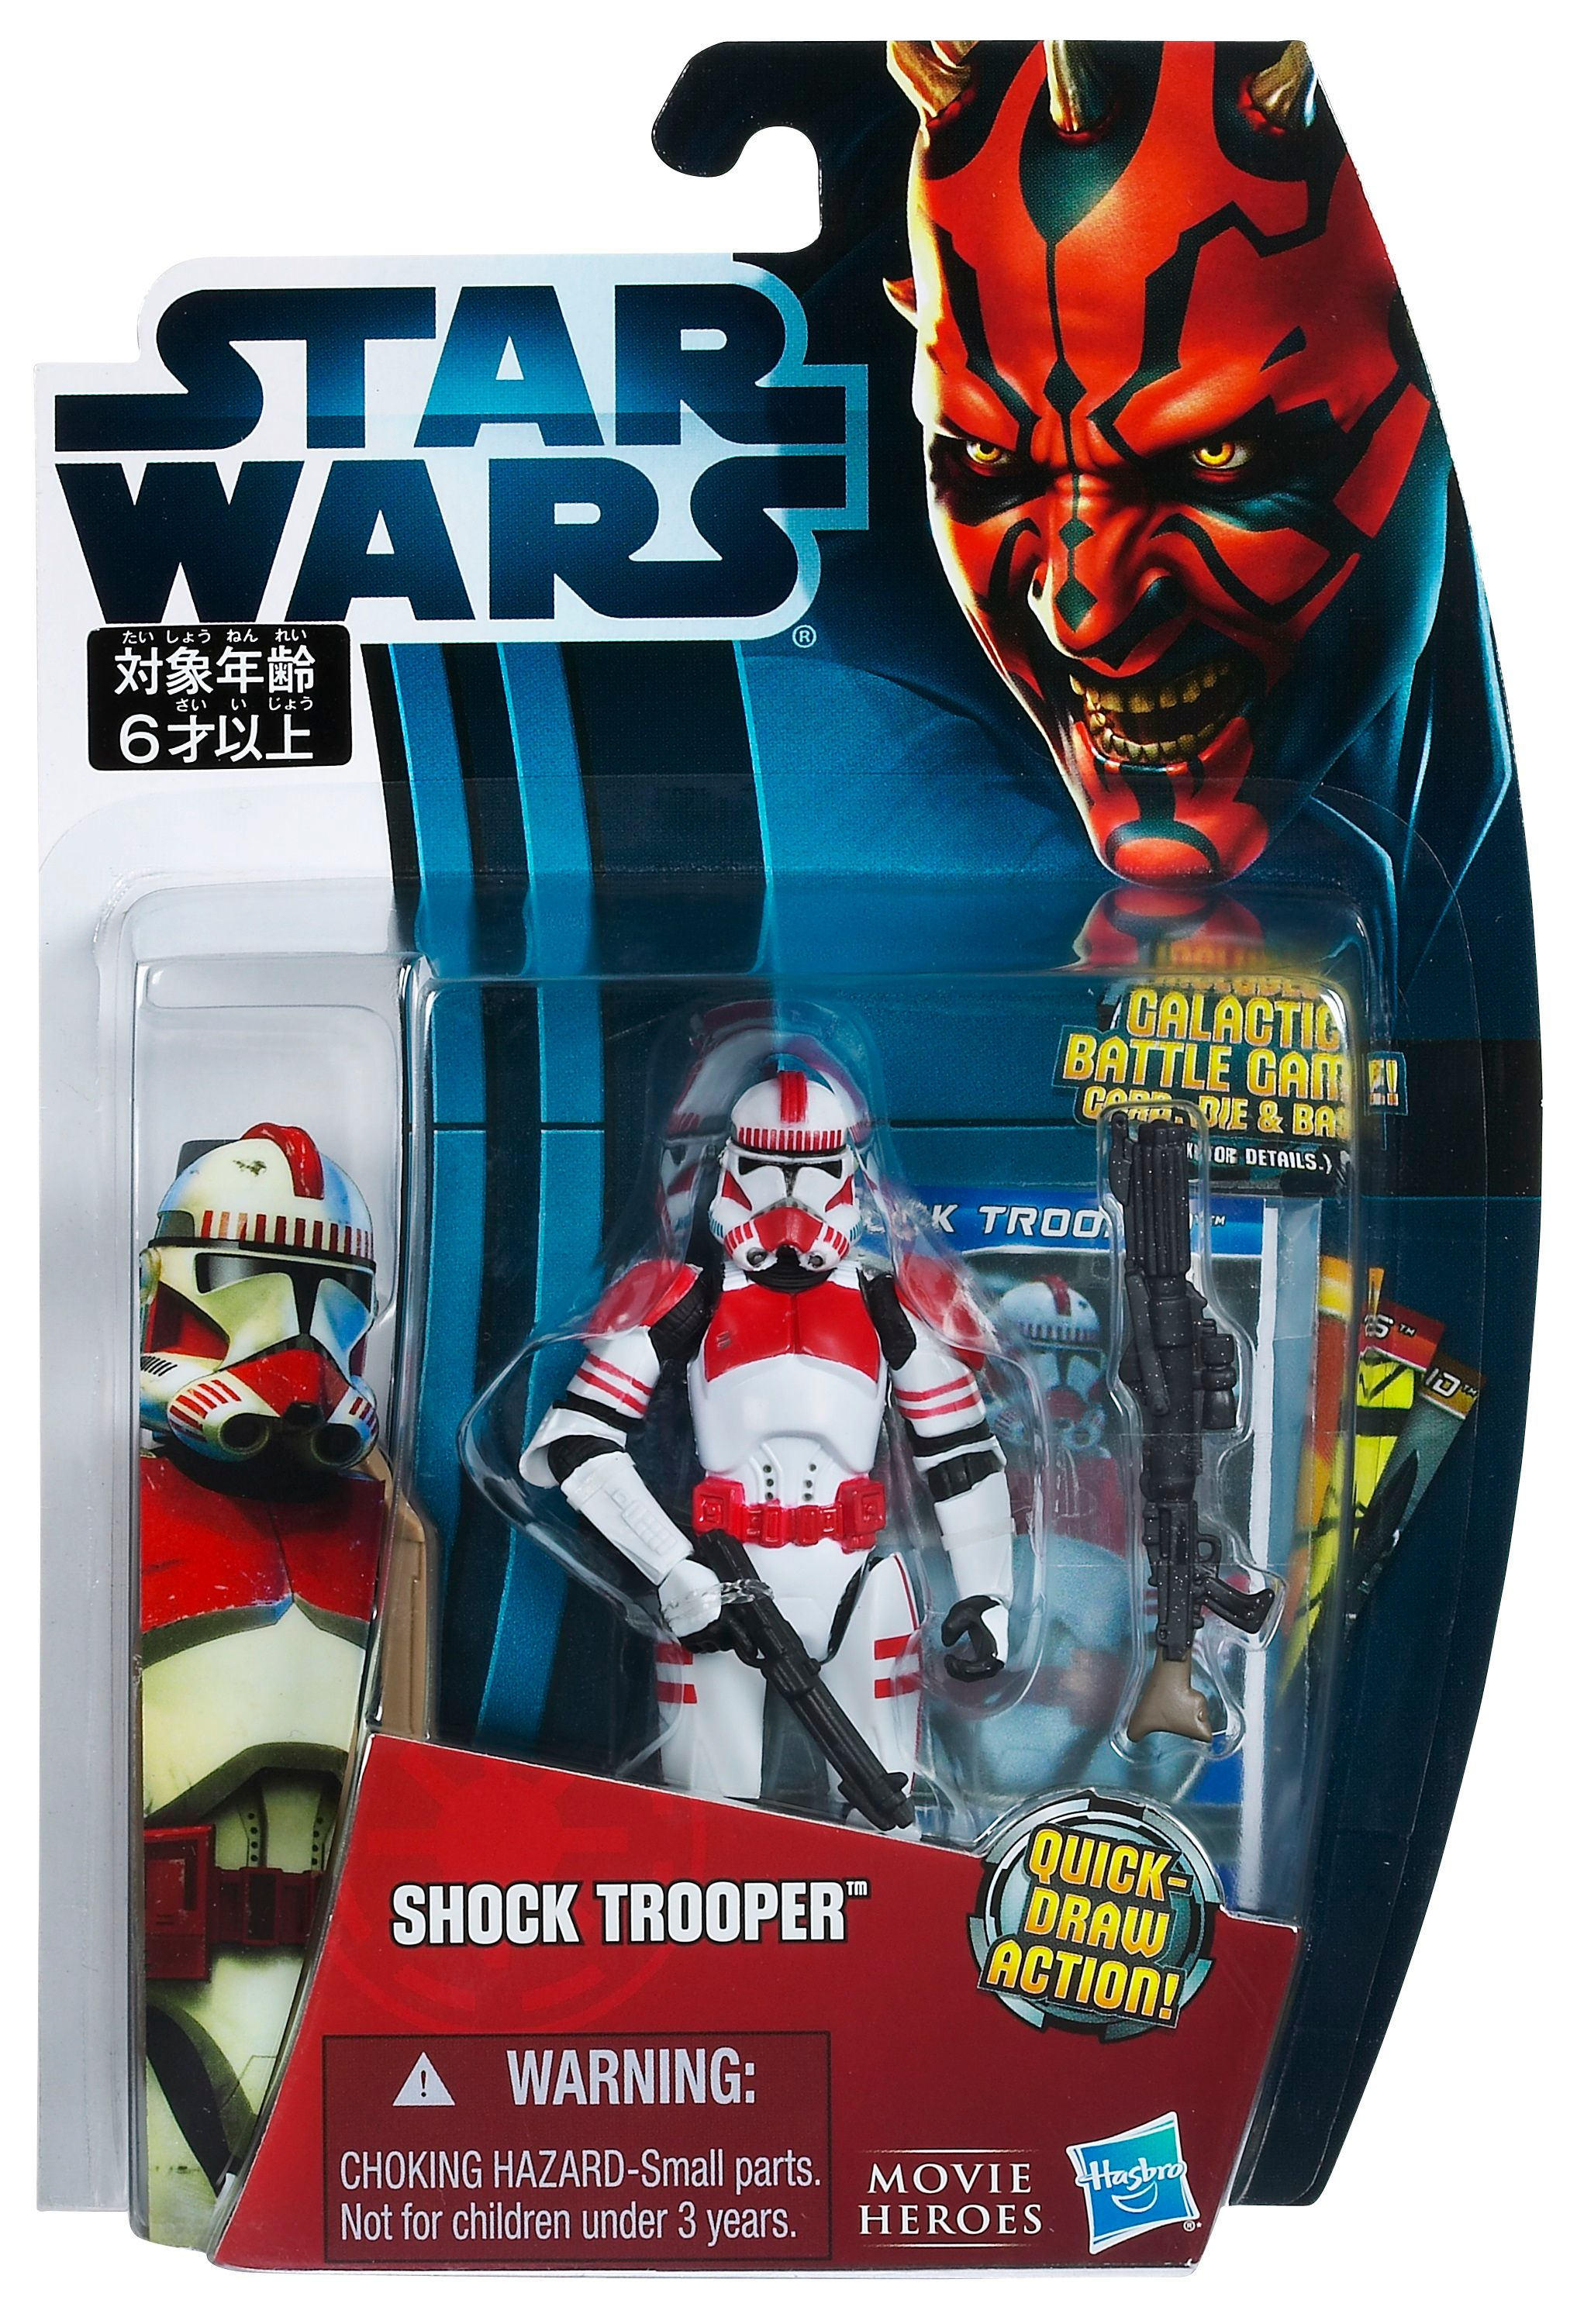 Star Wars Shock Trooper Movie Heroes Figure